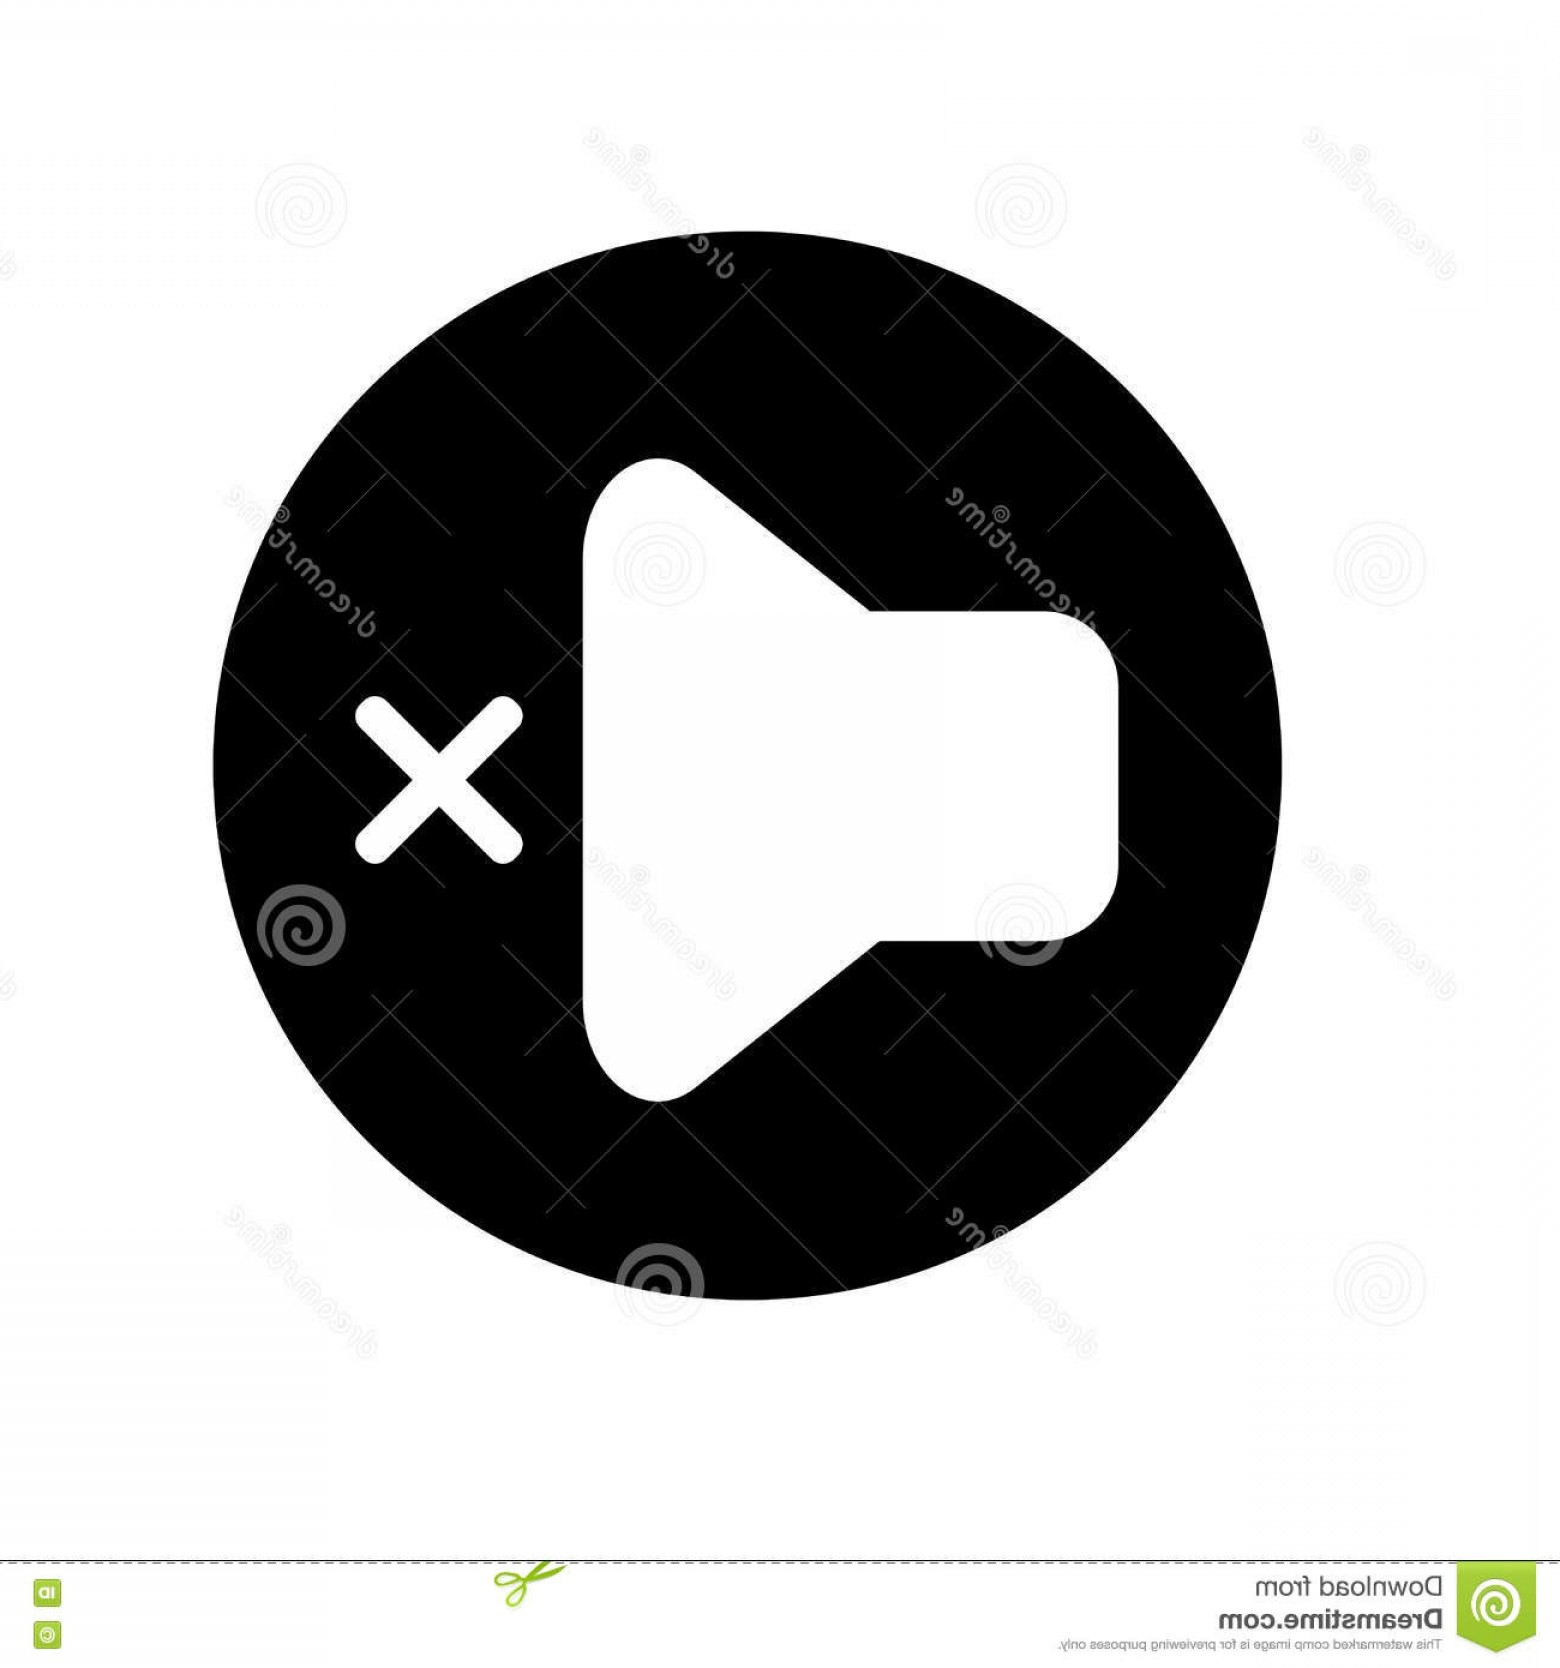 Volume Button Vector: Stock Illustration Volume Off Media Player Icon Illustration No Sound Icon Black White Icon Vector Illustration Image